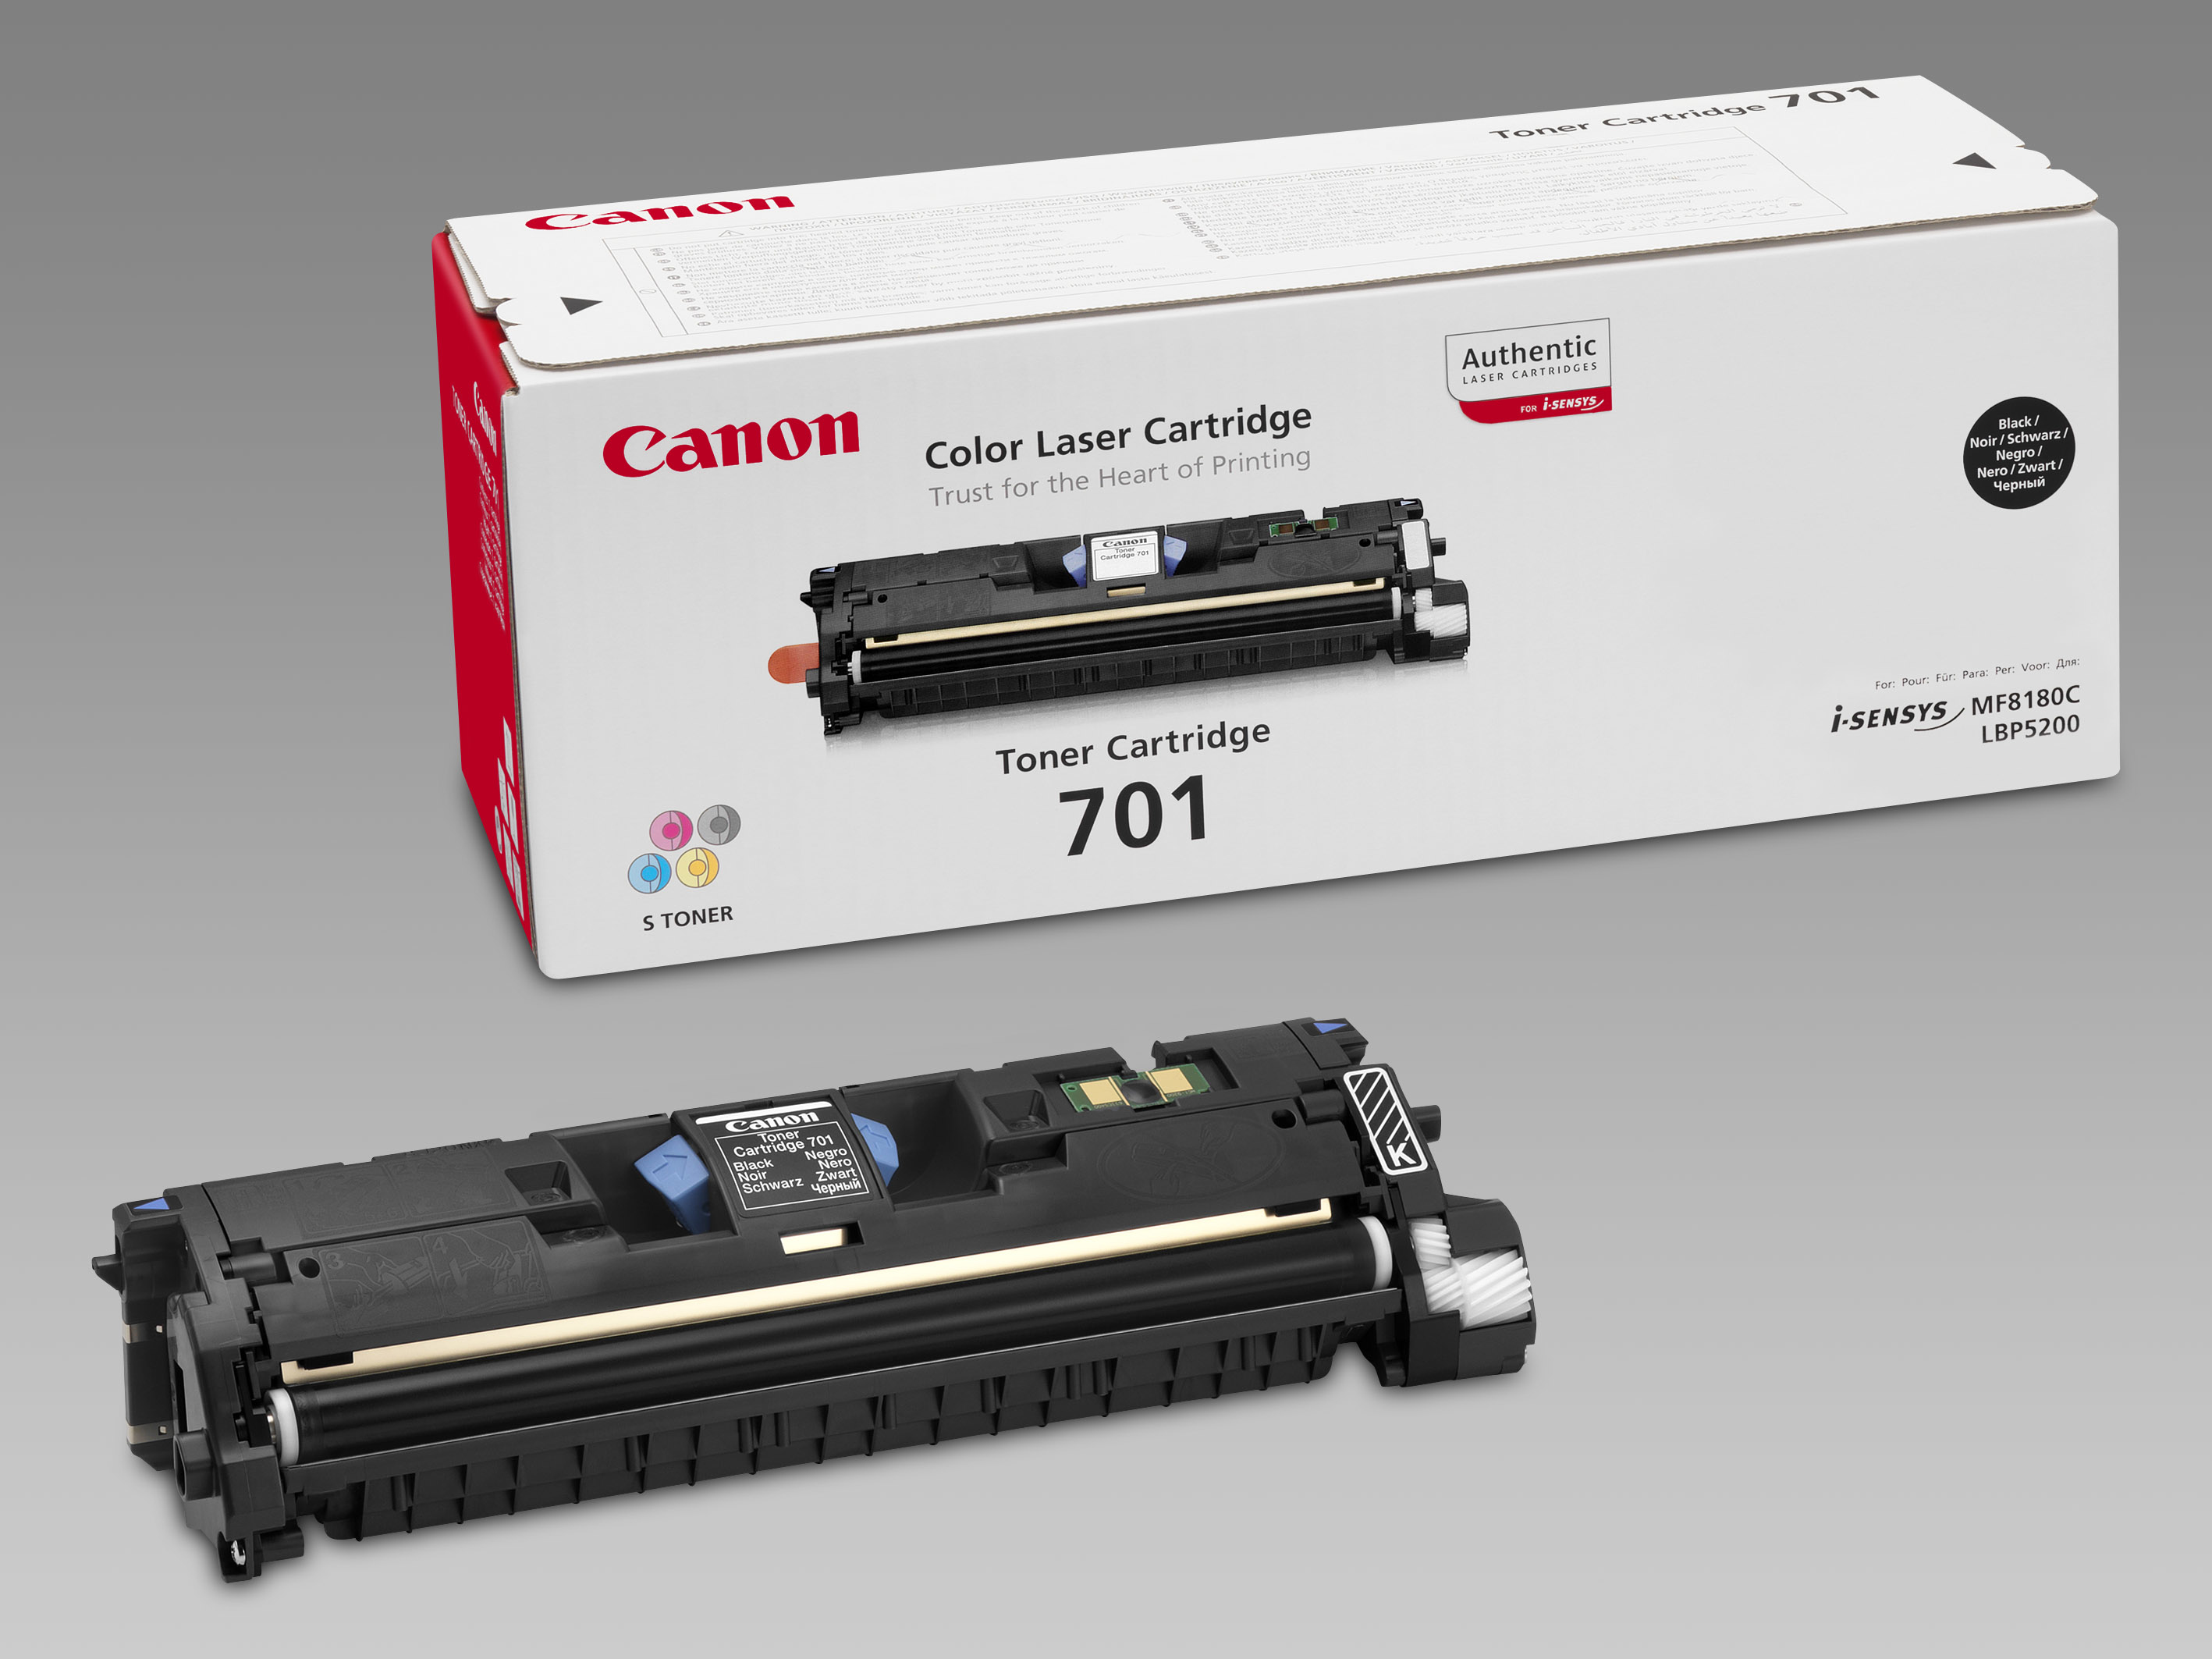 Remanufactured Canon 9287A003AA Toner Cartridge Black 9287A003AA - rem01